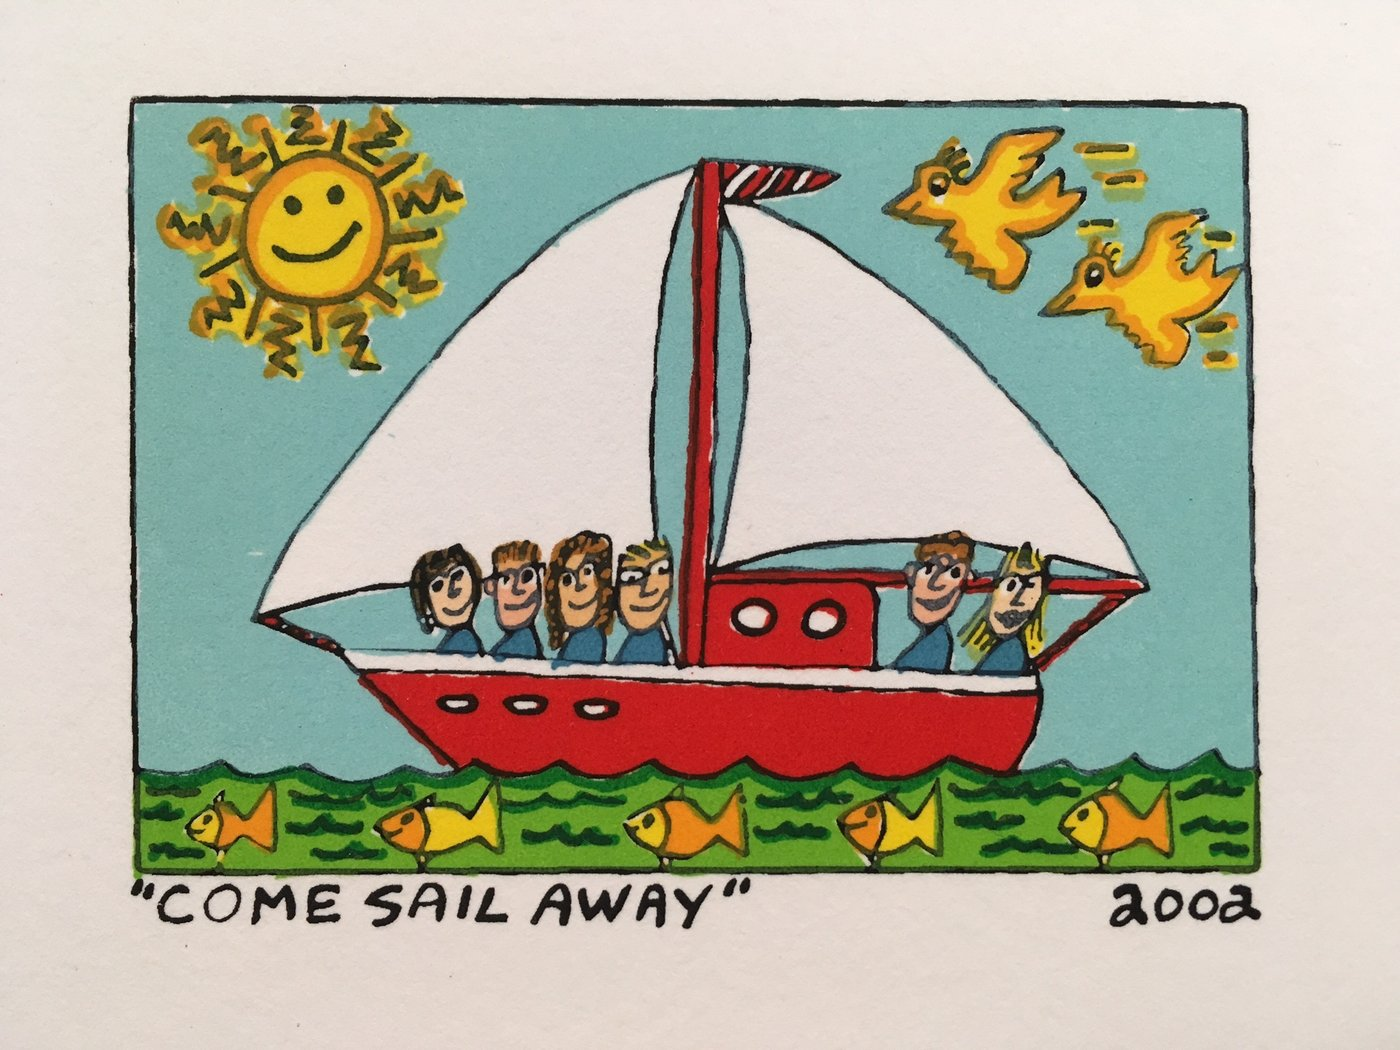 James Rizzi - COME SAIL AWAY